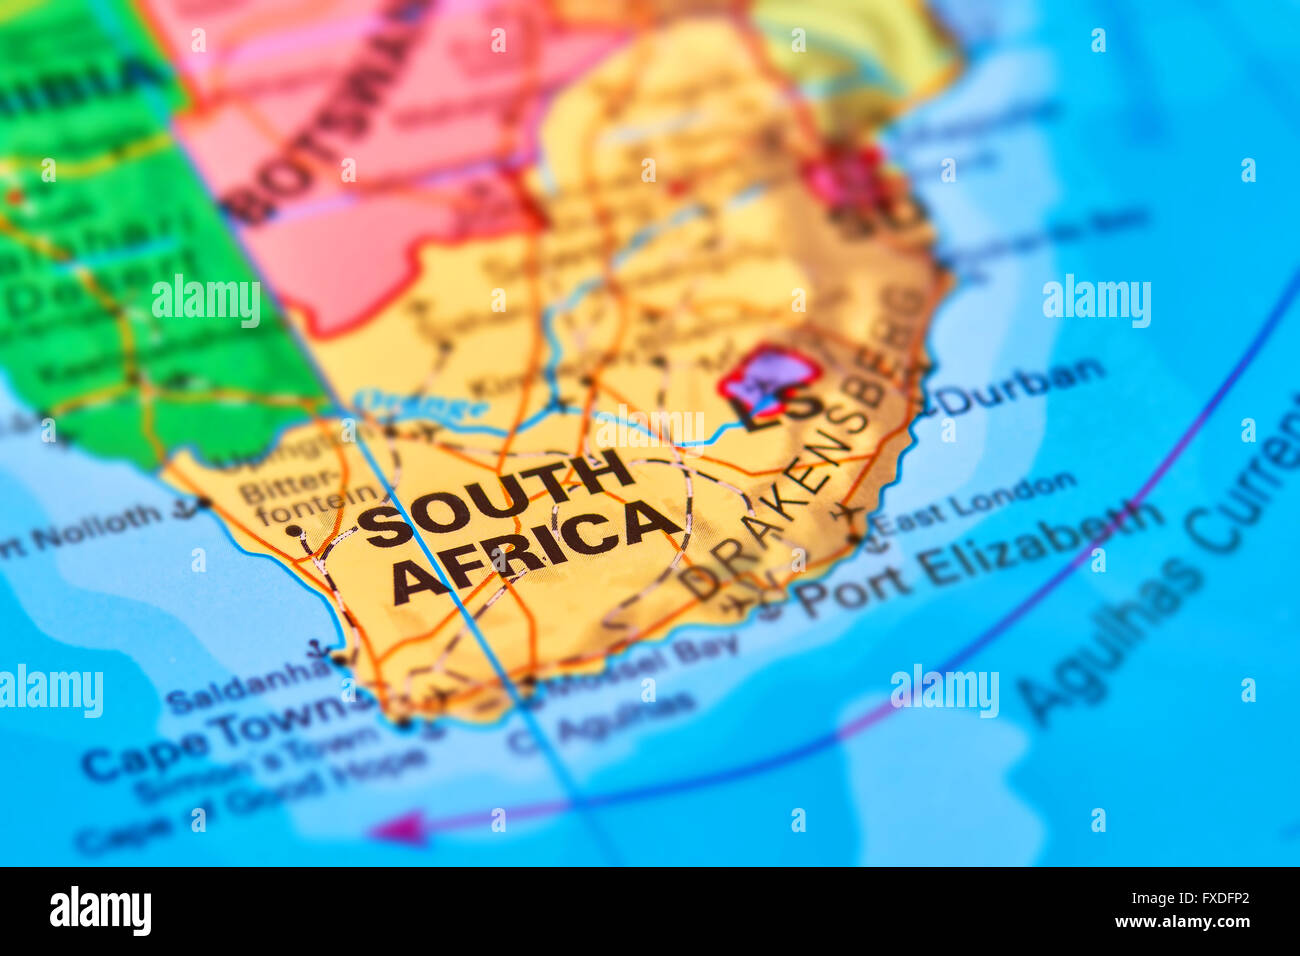 South africa country on the world map stock photo 102330650 alamy south africa country on the world map gumiabroncs Image collections